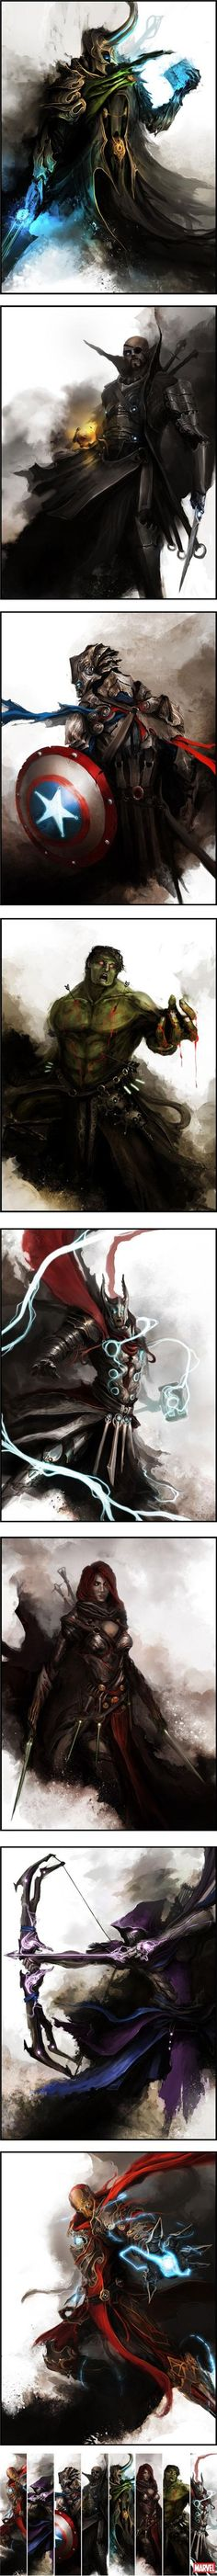 The Avengers Medieval Fantasy Style